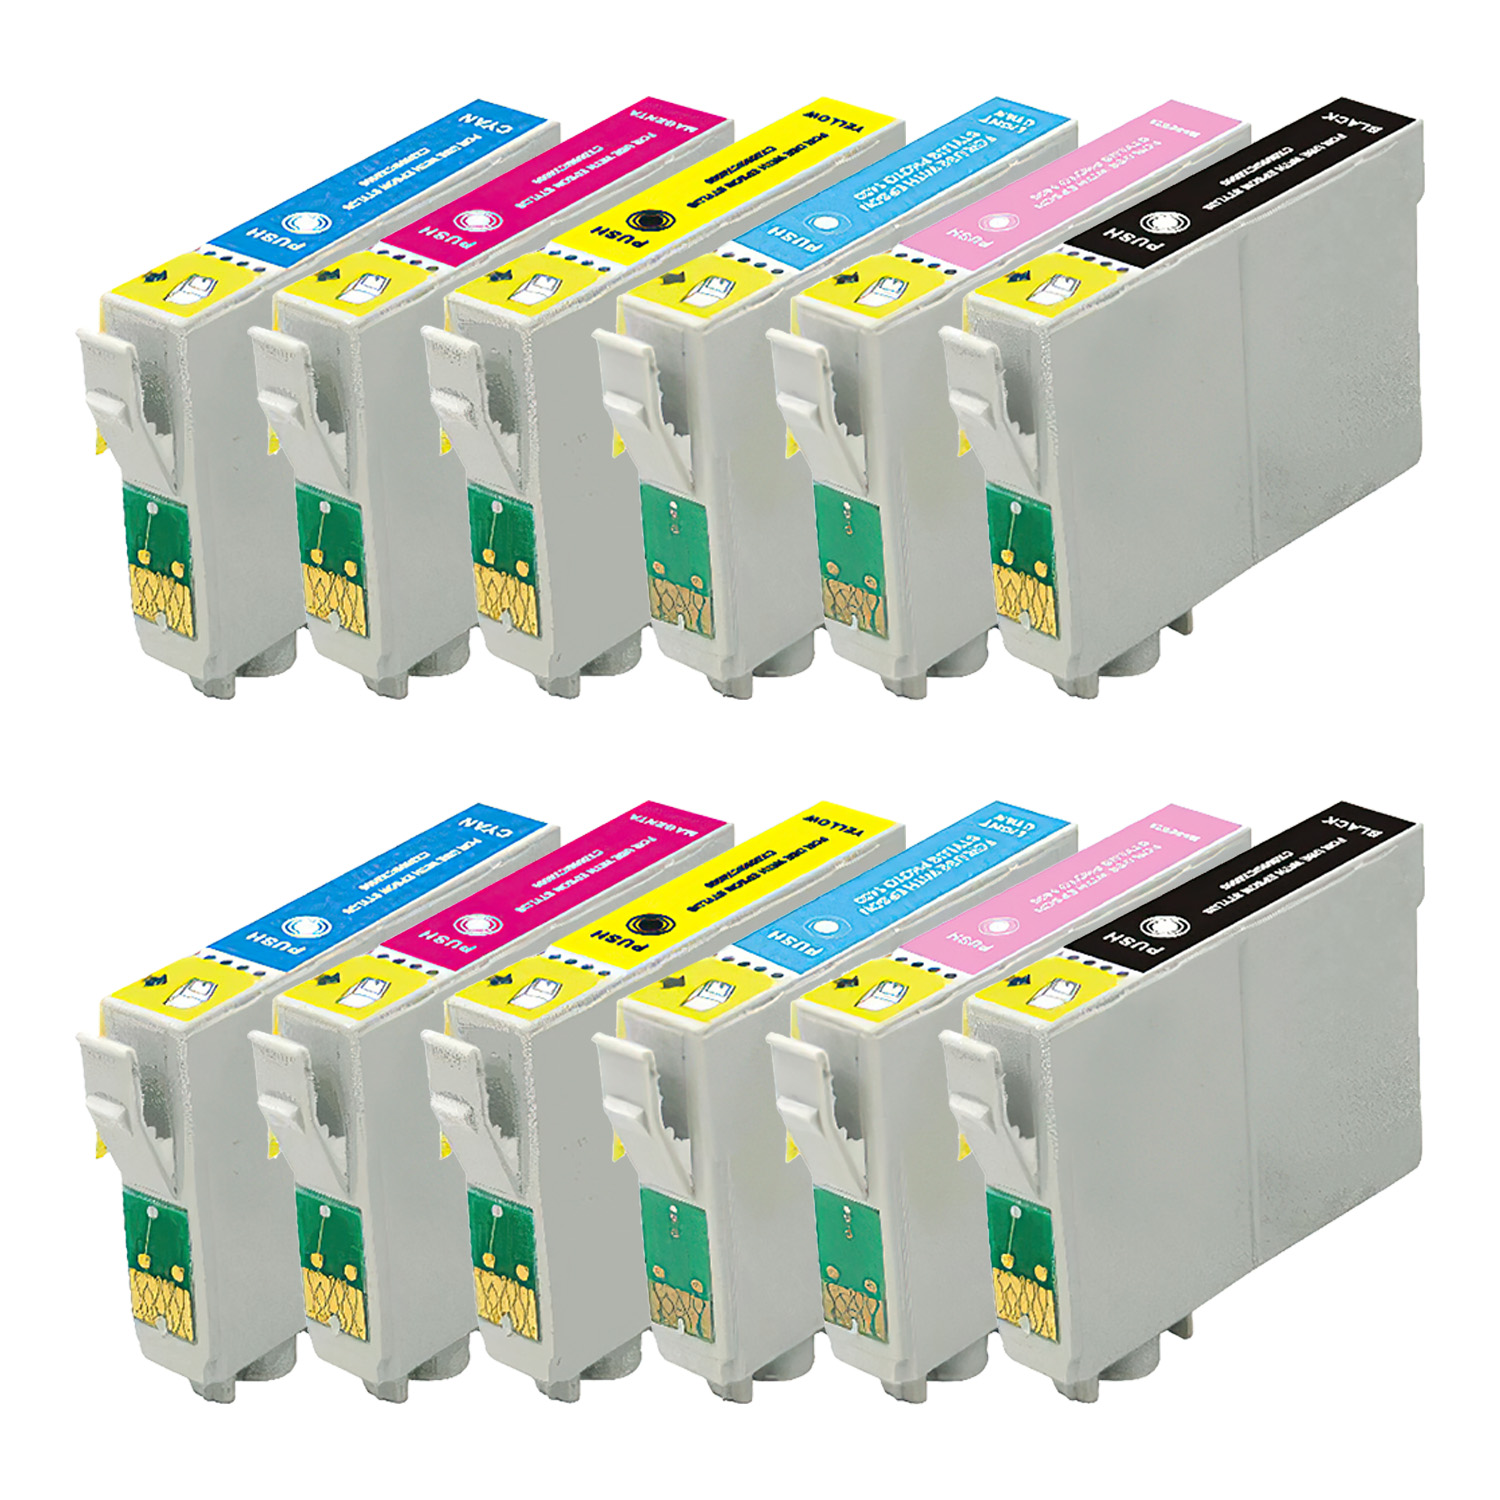 Remanufactured Epson 78 Inkjet Pack - 12 Cartridges